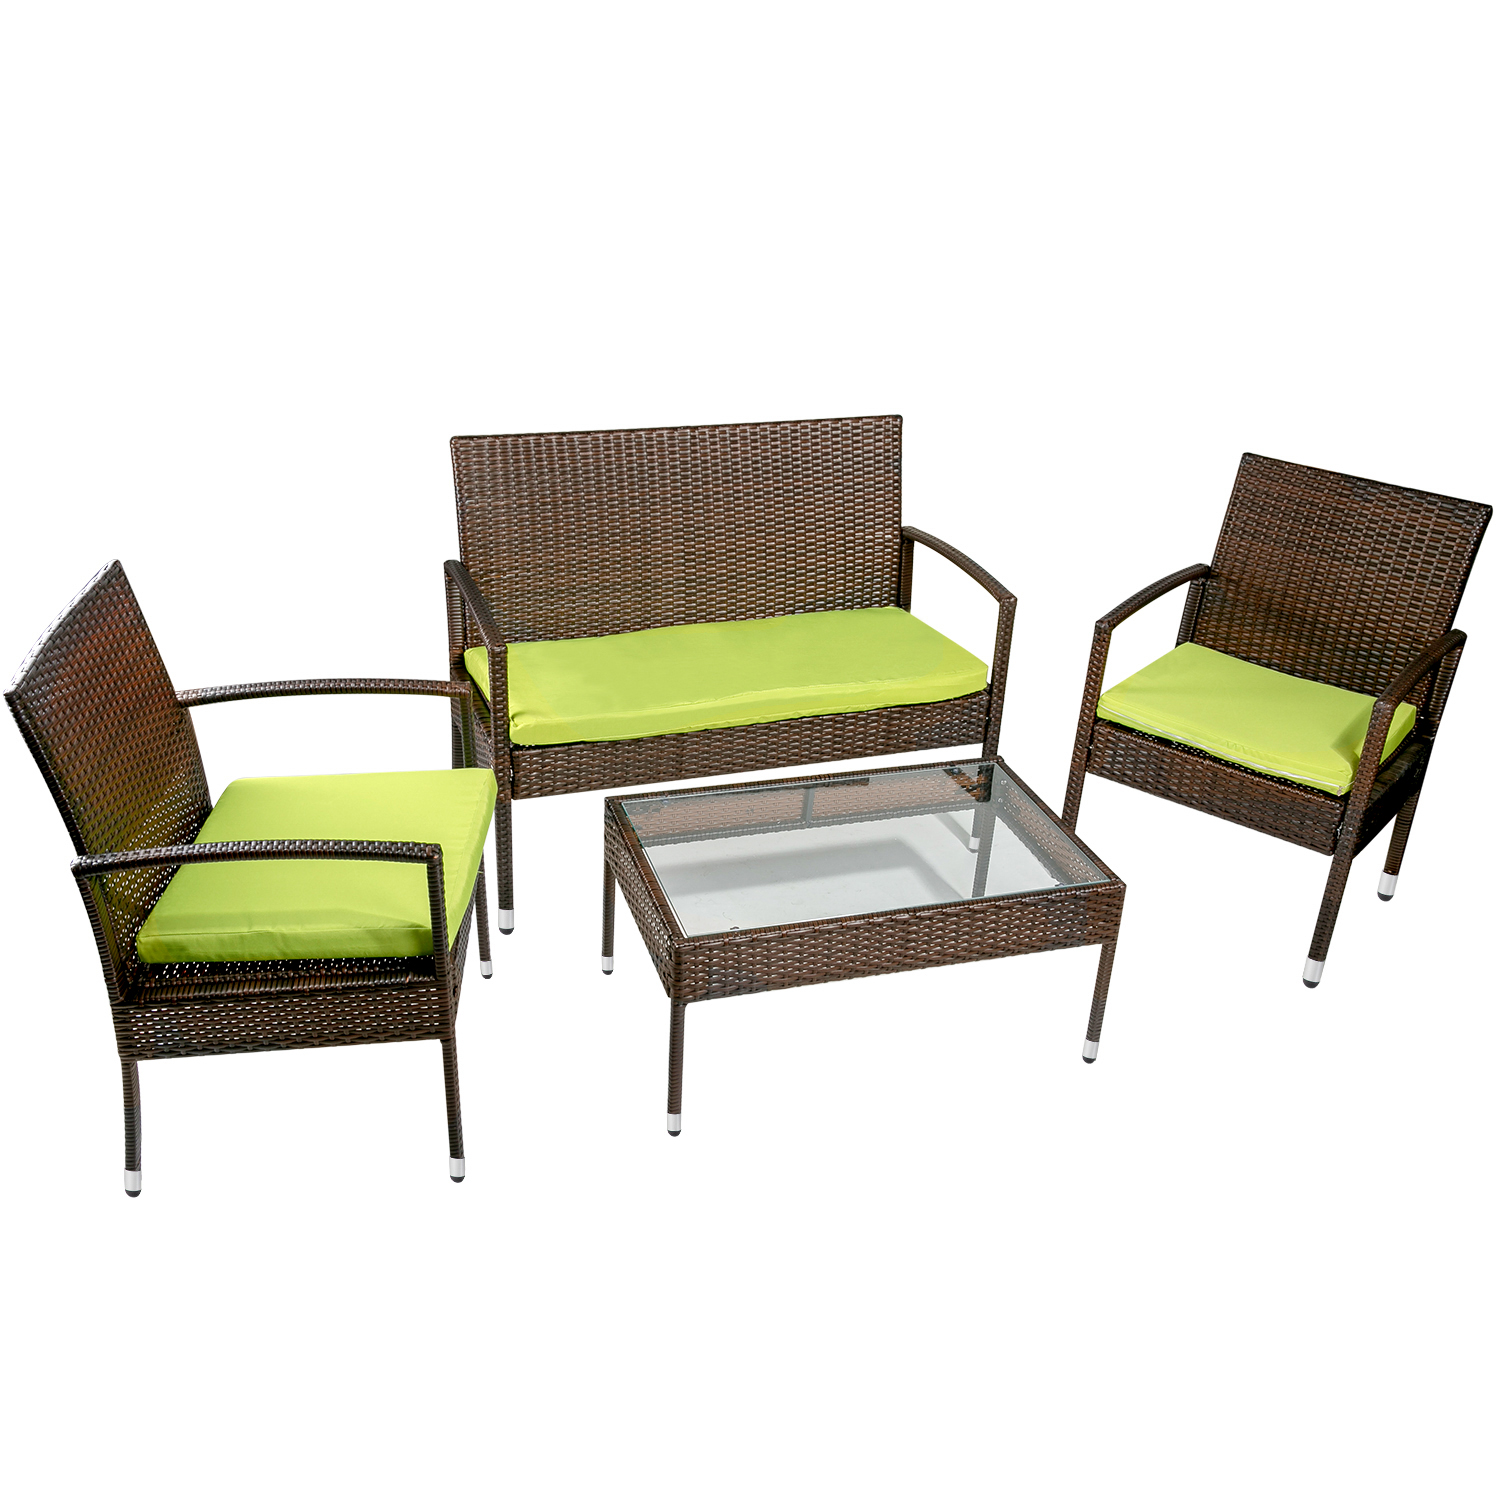 green wicker patio furniture sets for deck 2021 upgrade 4 piece wicker patio conversation furniture set w loveseat seats 2 armchair sofas coffee